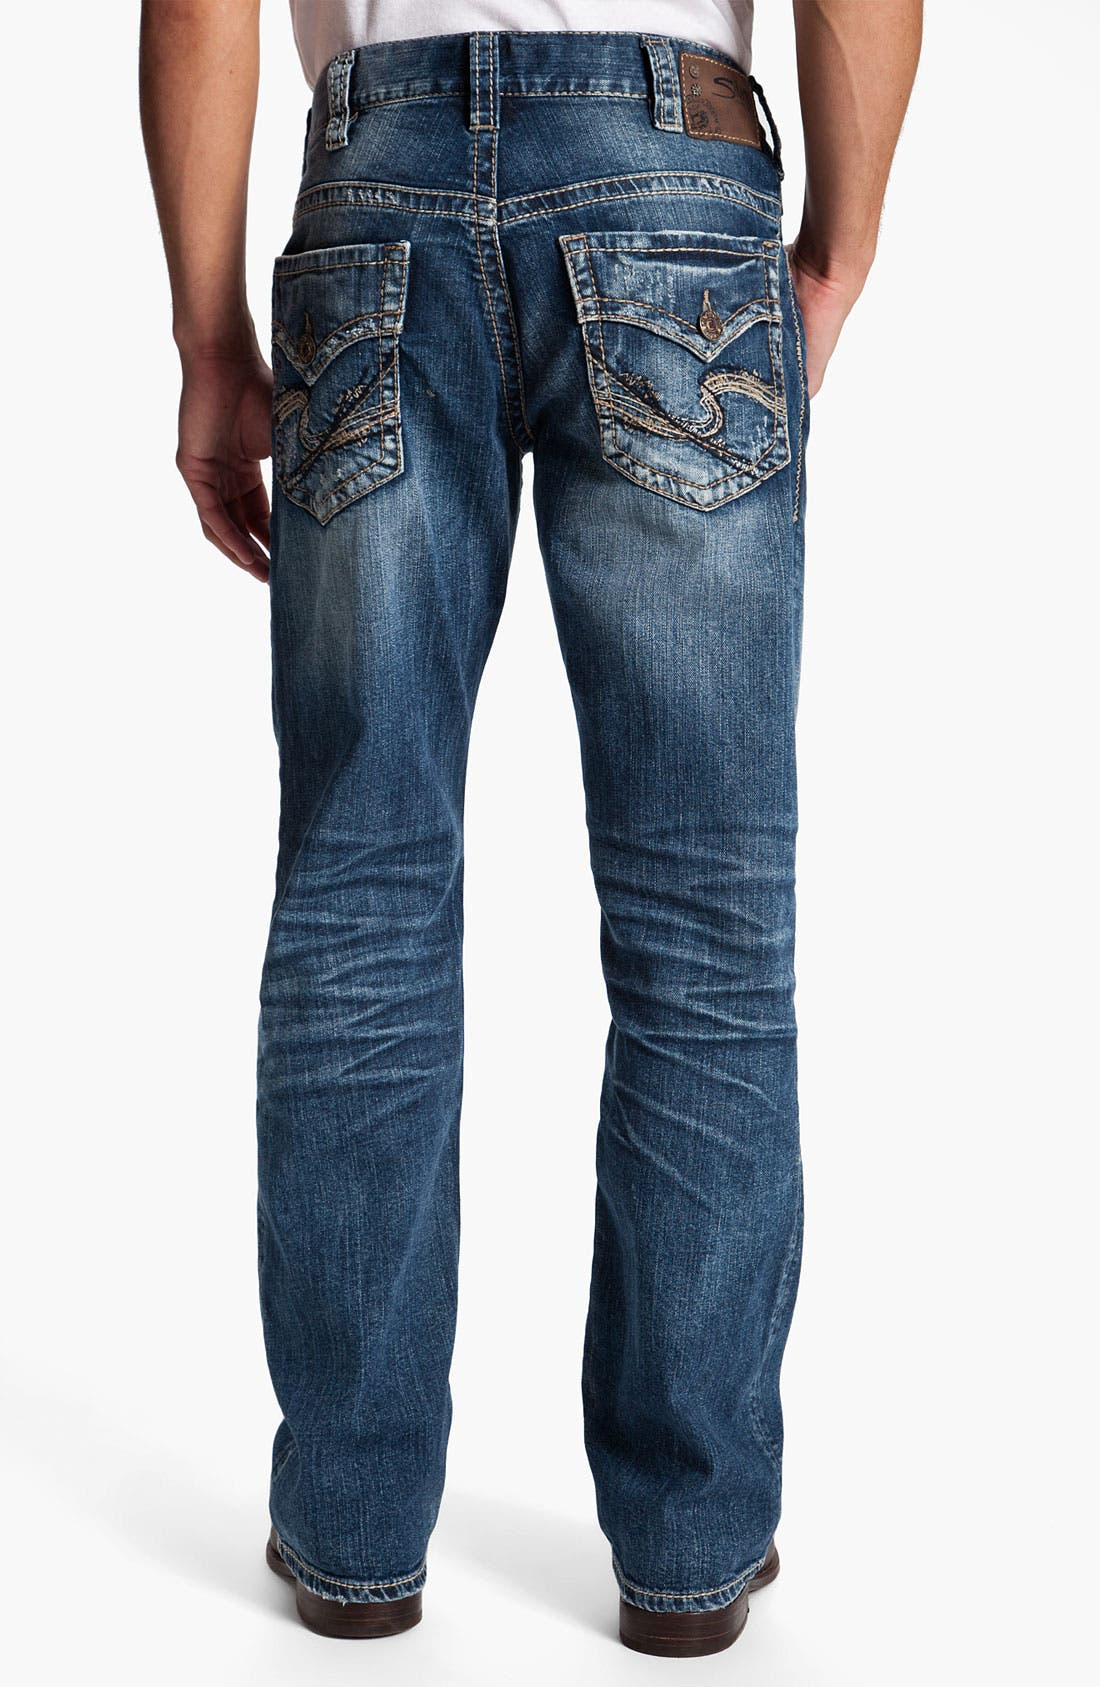 Main Image - Silver Jeans Co. 'Gordie' Relaxed Straight Leg Jeans